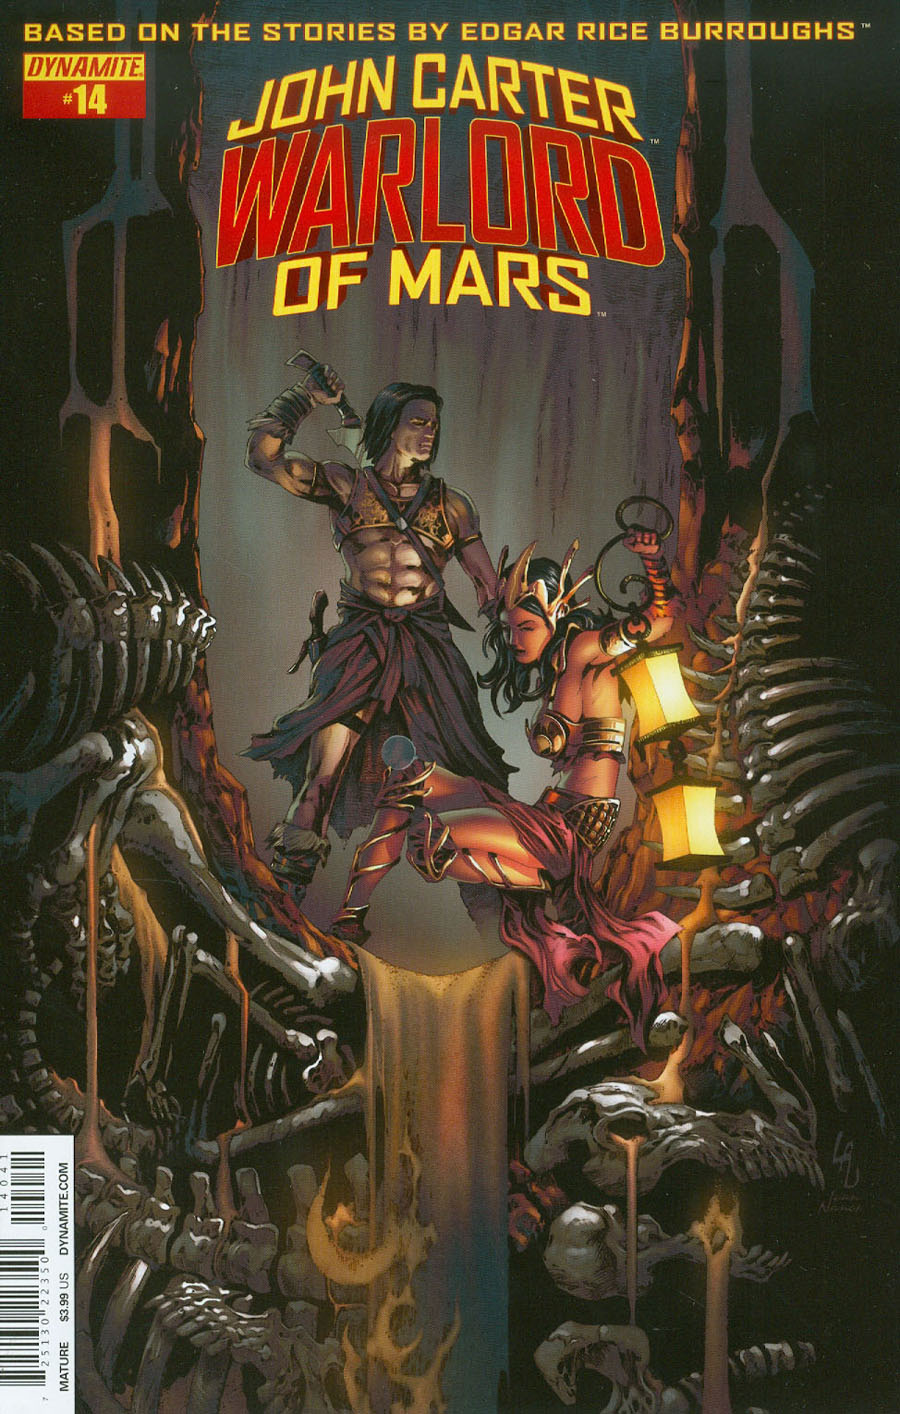 John Carter Warlord Of Mars Vol 2 #14 Cover D Variant Jonathan Lau Subscription Cover